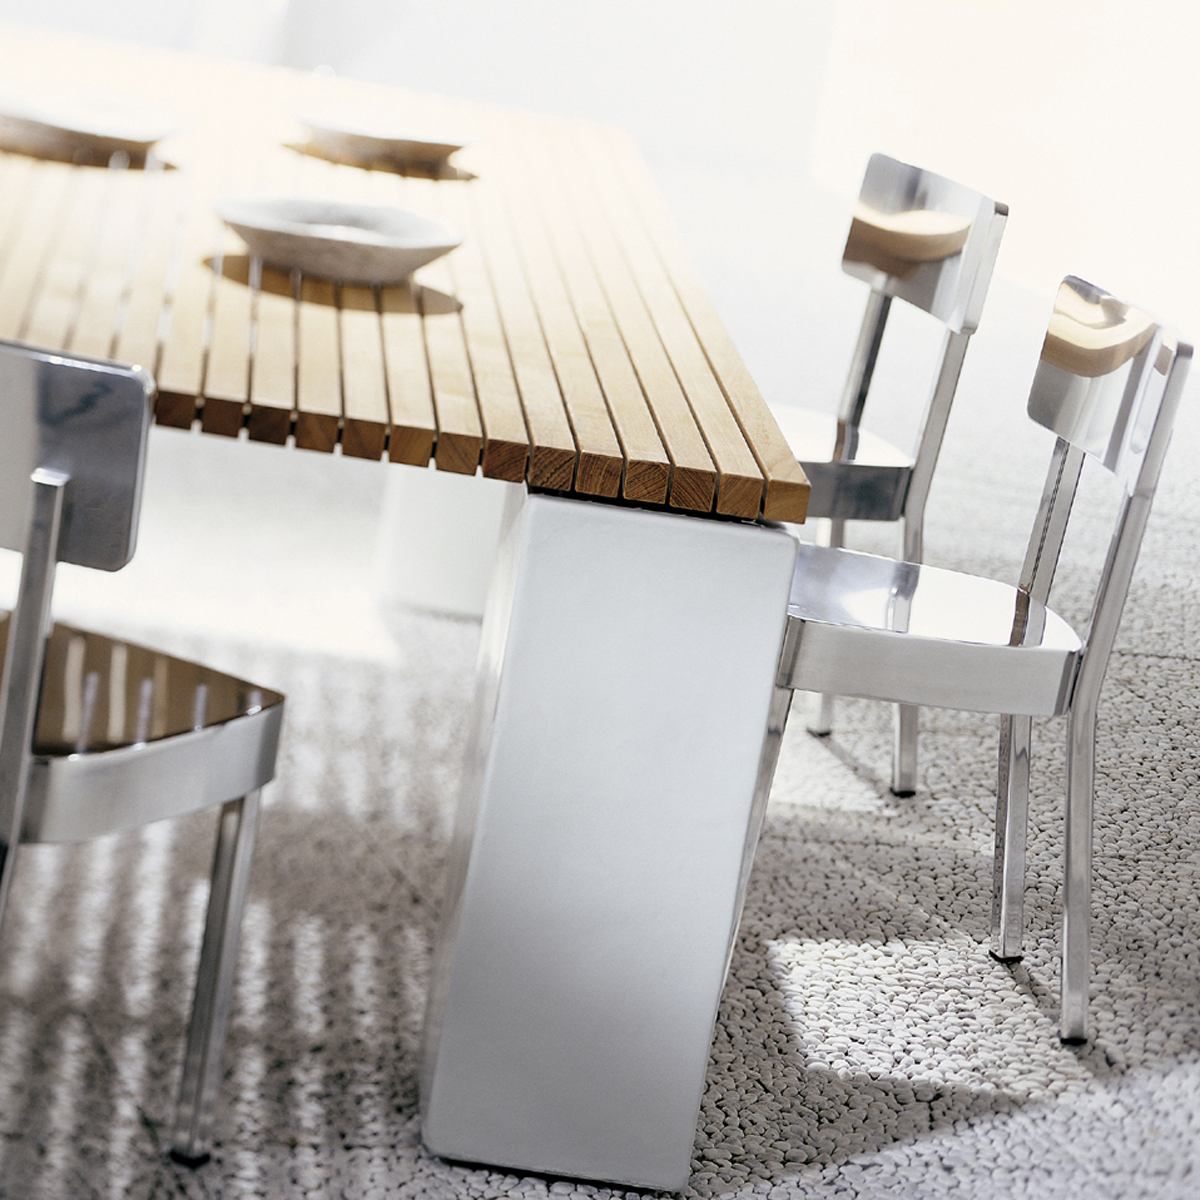 gervasoni inout 33/34 tables - Table with teak slats top, available in white.